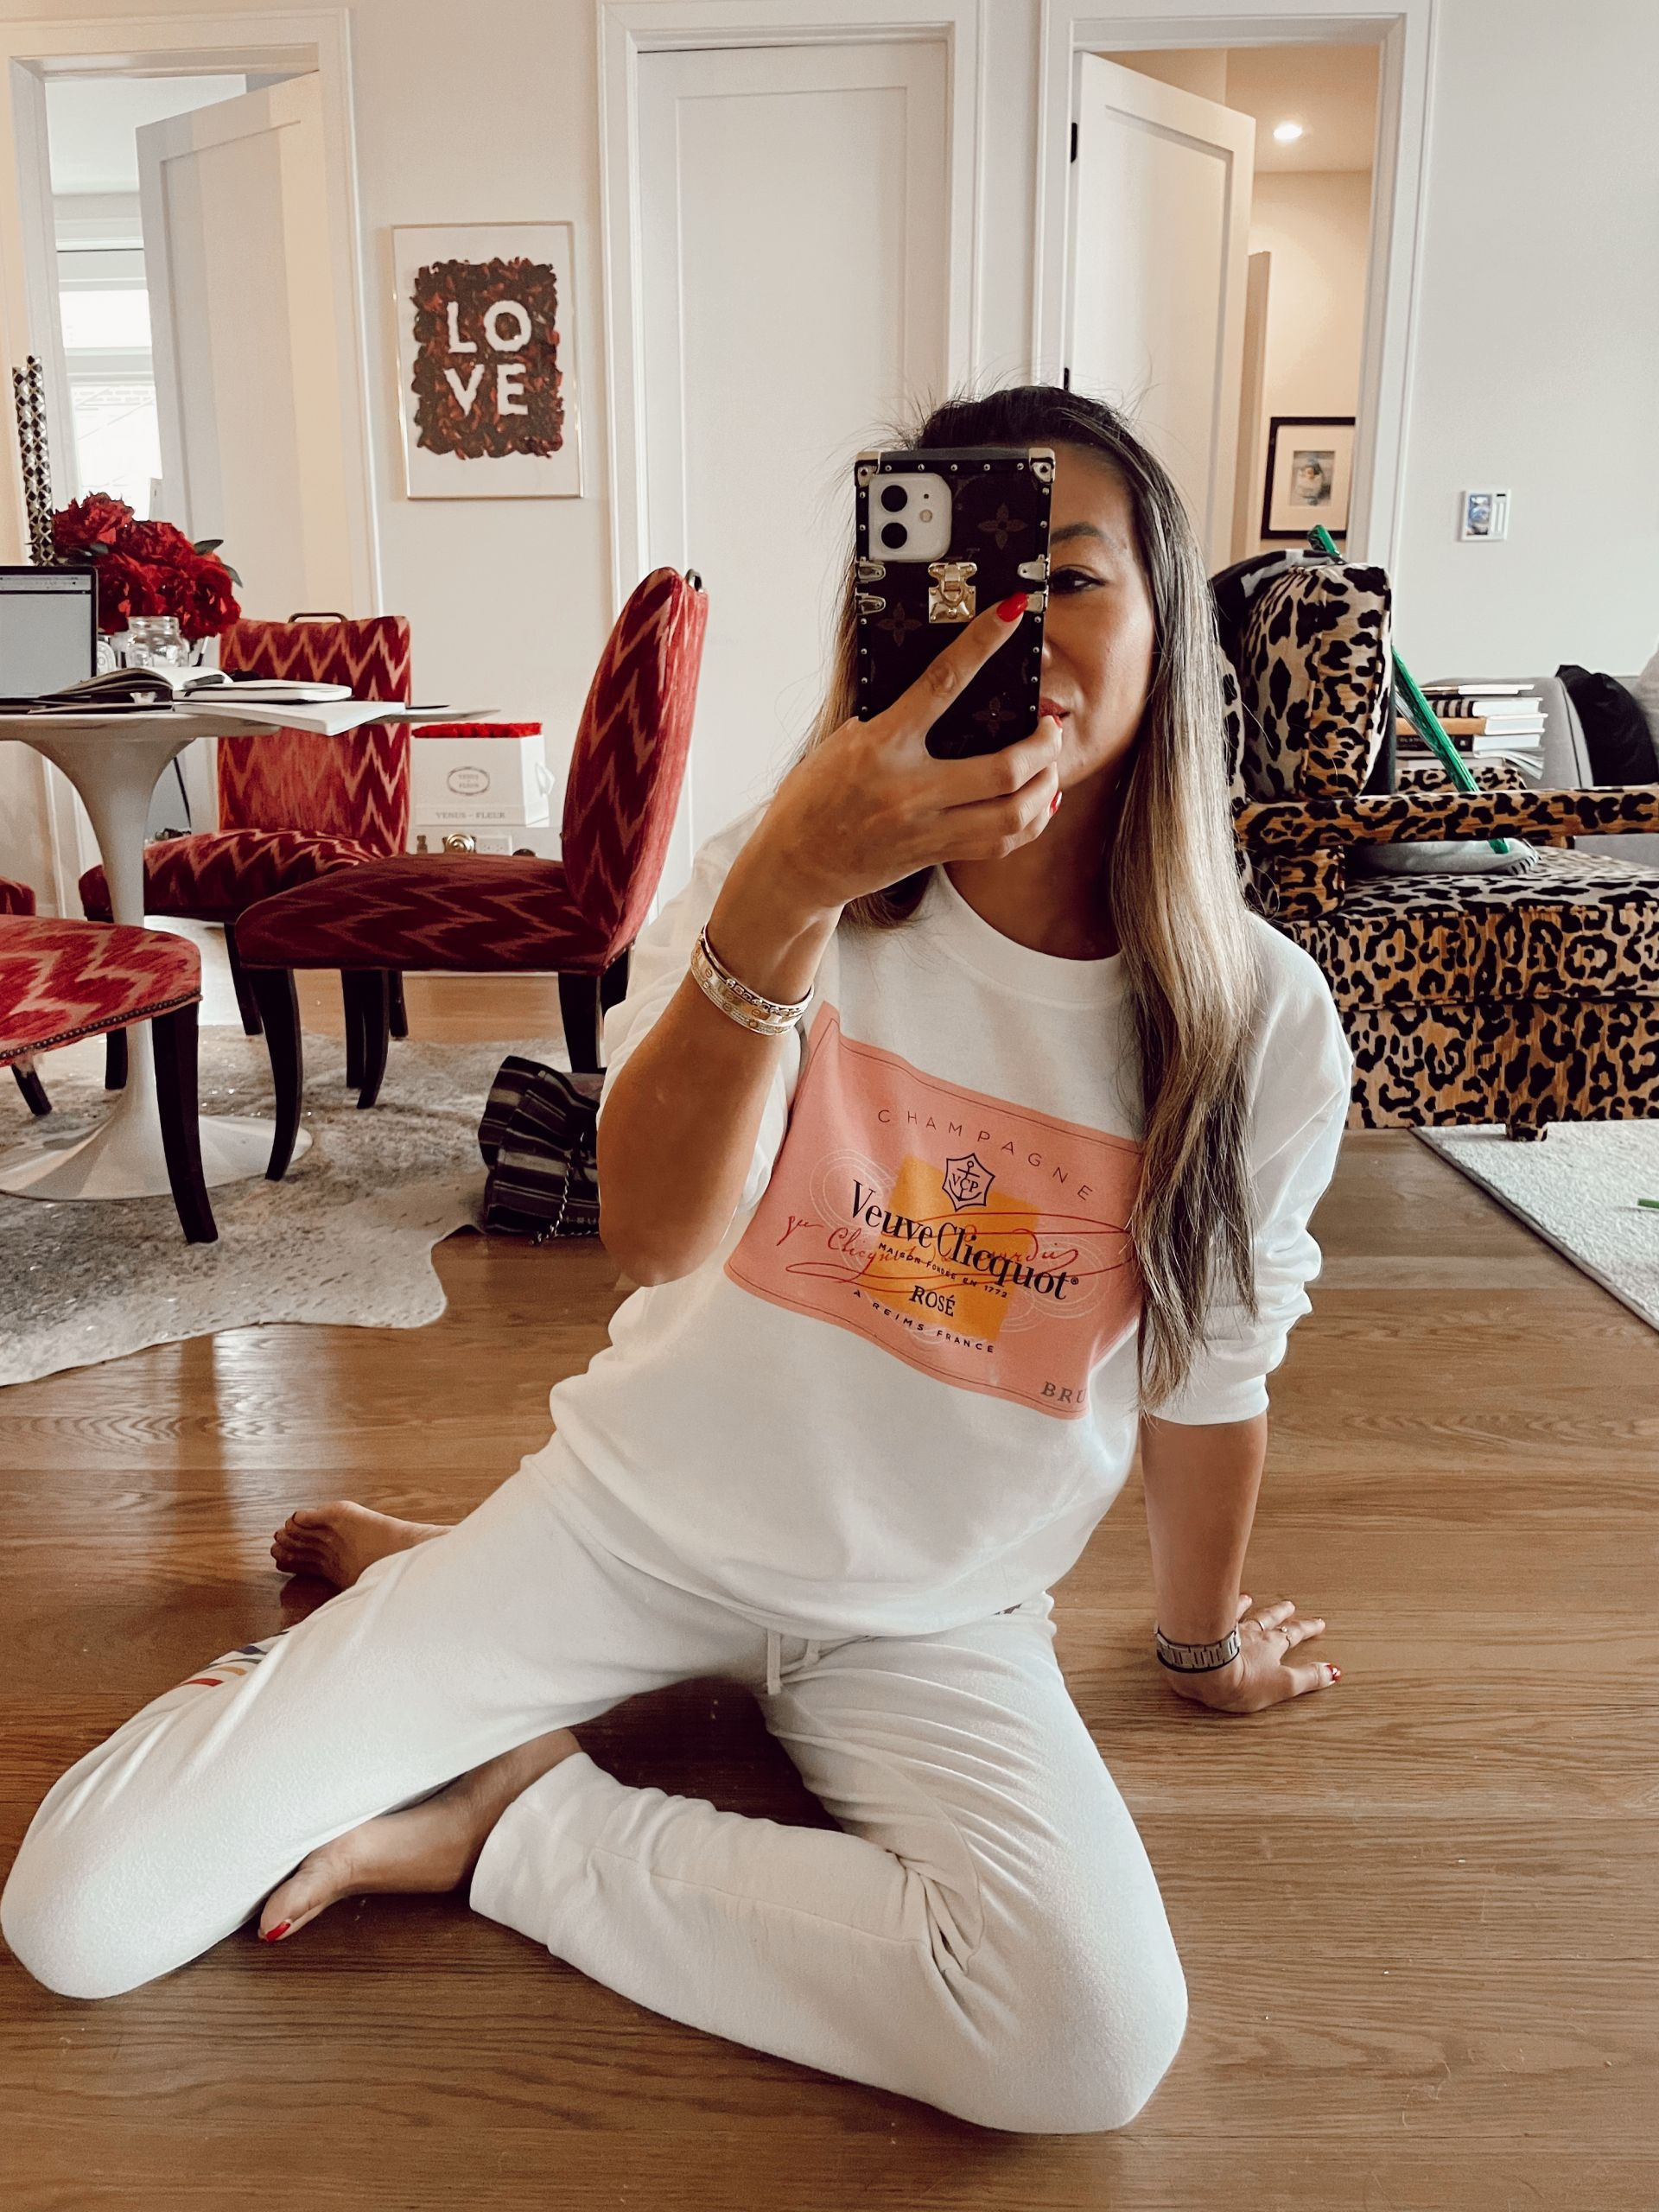 Veuve Rose Pullover, Valentine's Day Gift Guides, Vday gift guide, affordable vday gifts, gift ideas for girlfriends, valentine's day style ideas, Red Soles and Red Wine, Jennifer Worman